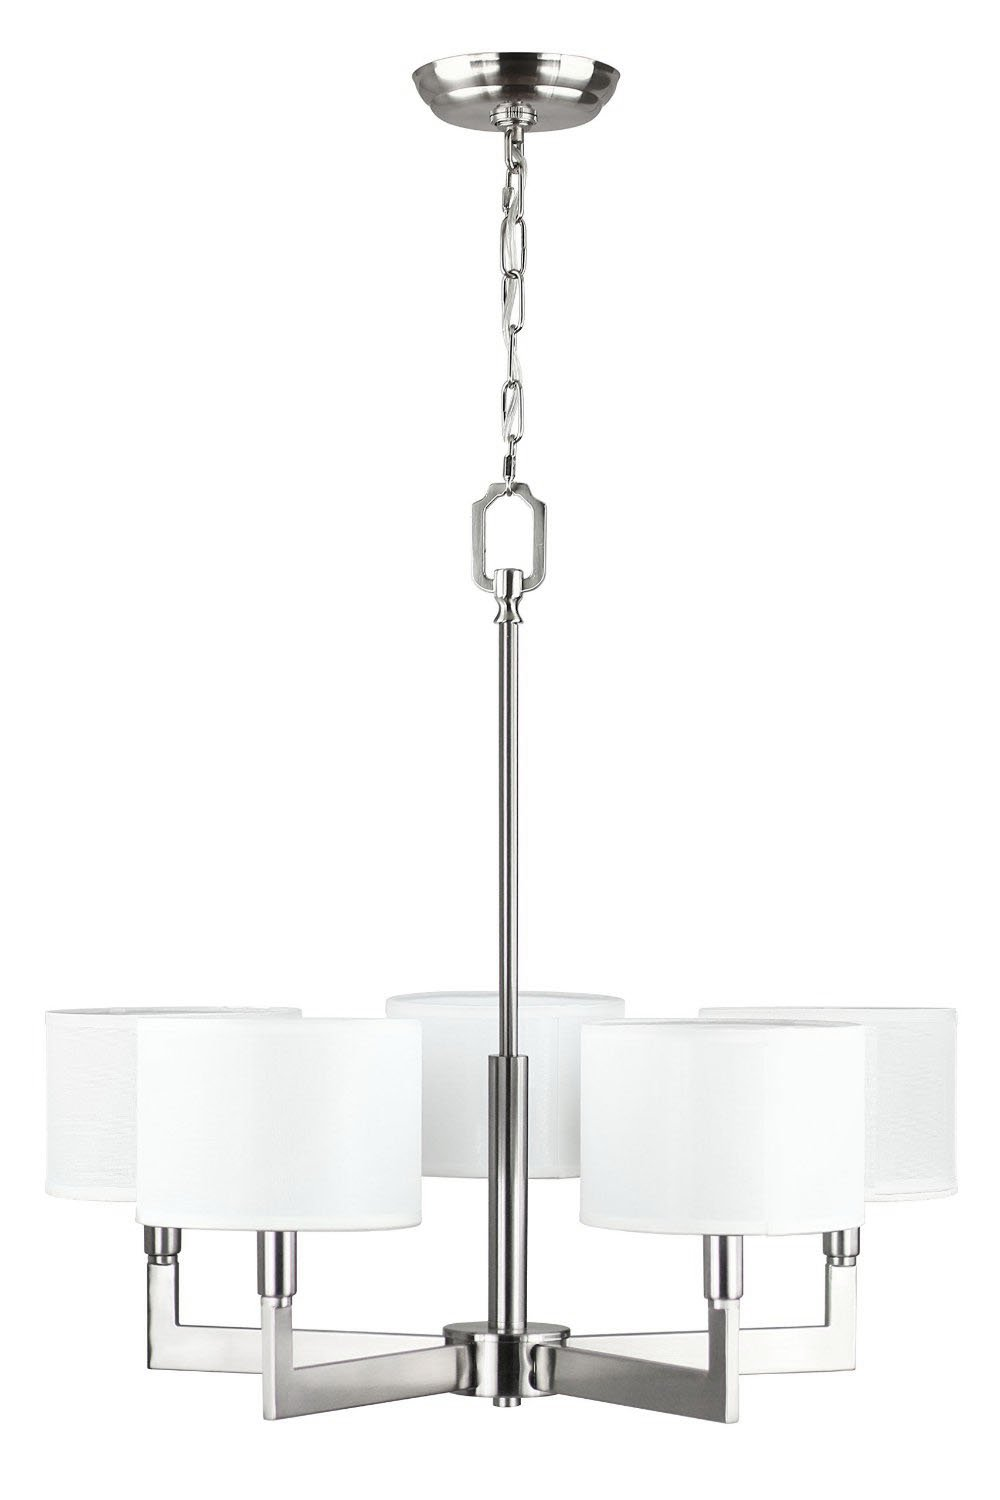 Allegro 5 light pendant chandelier brushed nickel white fabric allegro 5 light pendant chandelier brushed nickel white fabric shade fixture 84 inch max height linea di liara ll c135 bn amazon mozeypictures Image collections